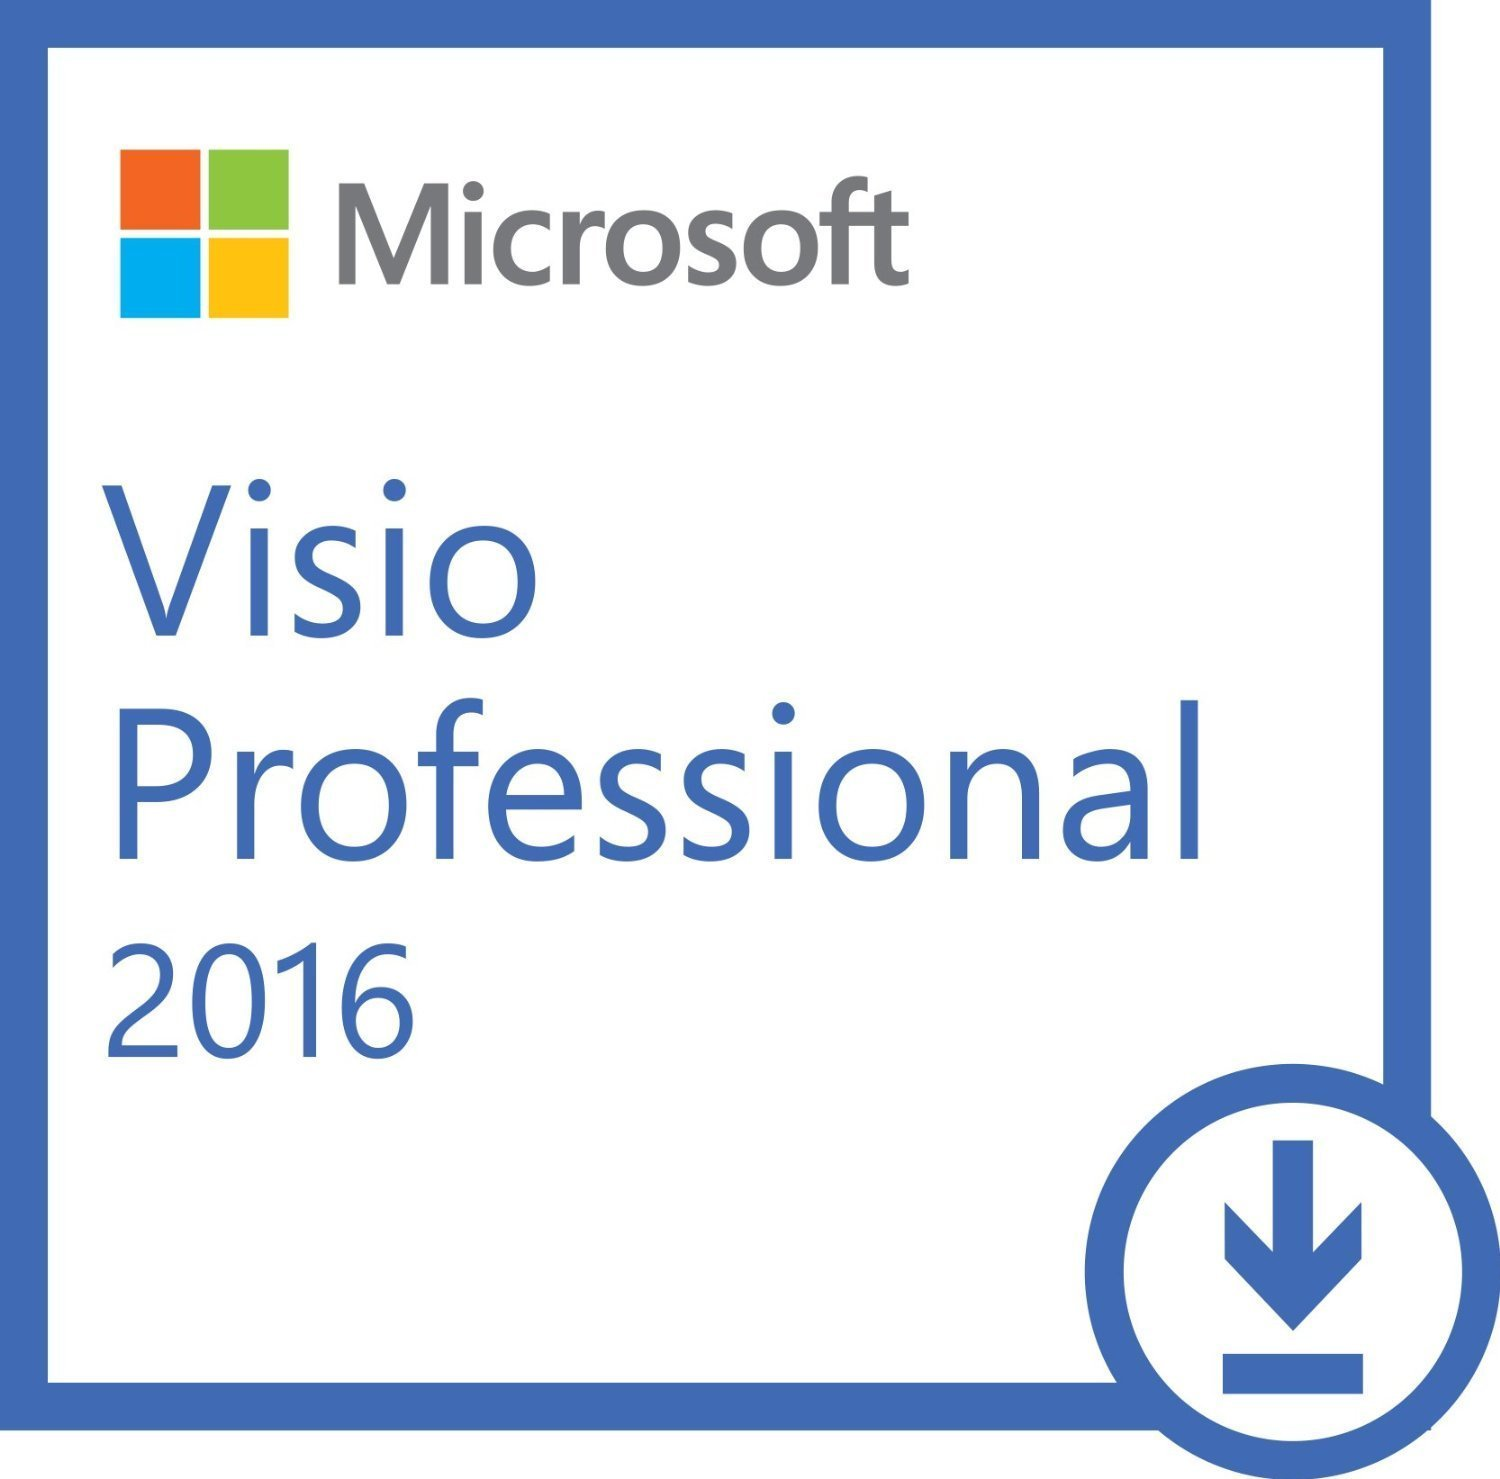 genuine microsoft visio 2016 professional and 27 similar items visio 2016 pro 425981739 - Visio Similar